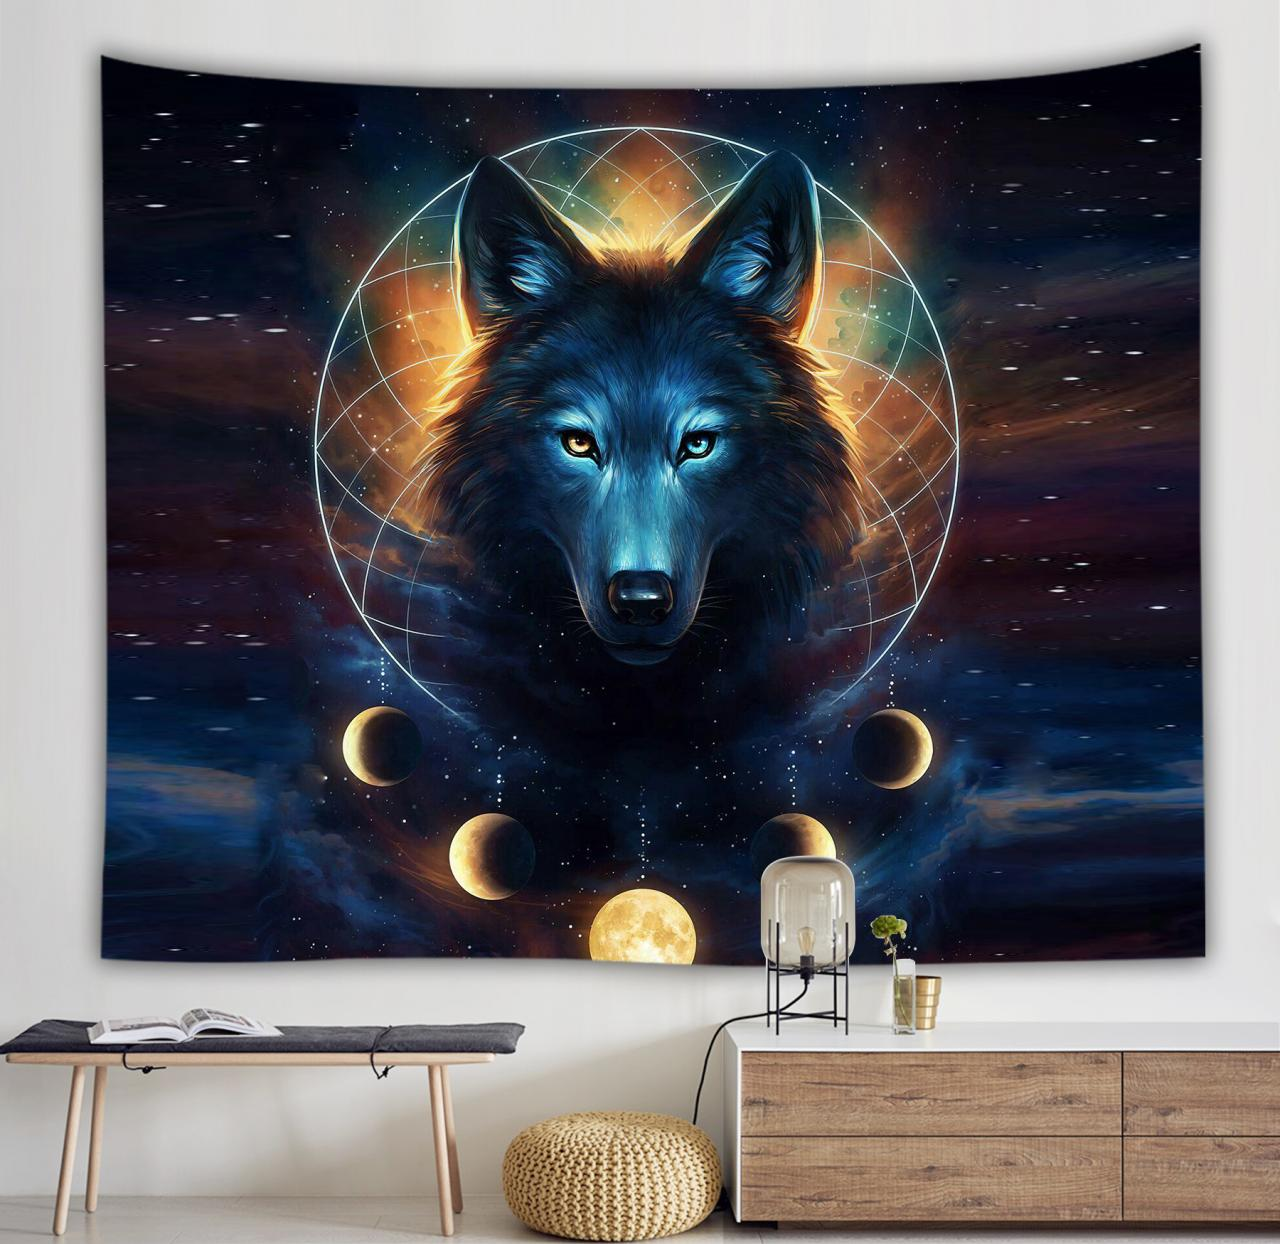 Home Decoration Tapestry Picnic Mat Animal Tapestry Digital Printing Wolf Lion Tiger Models Wall Hanging Mural